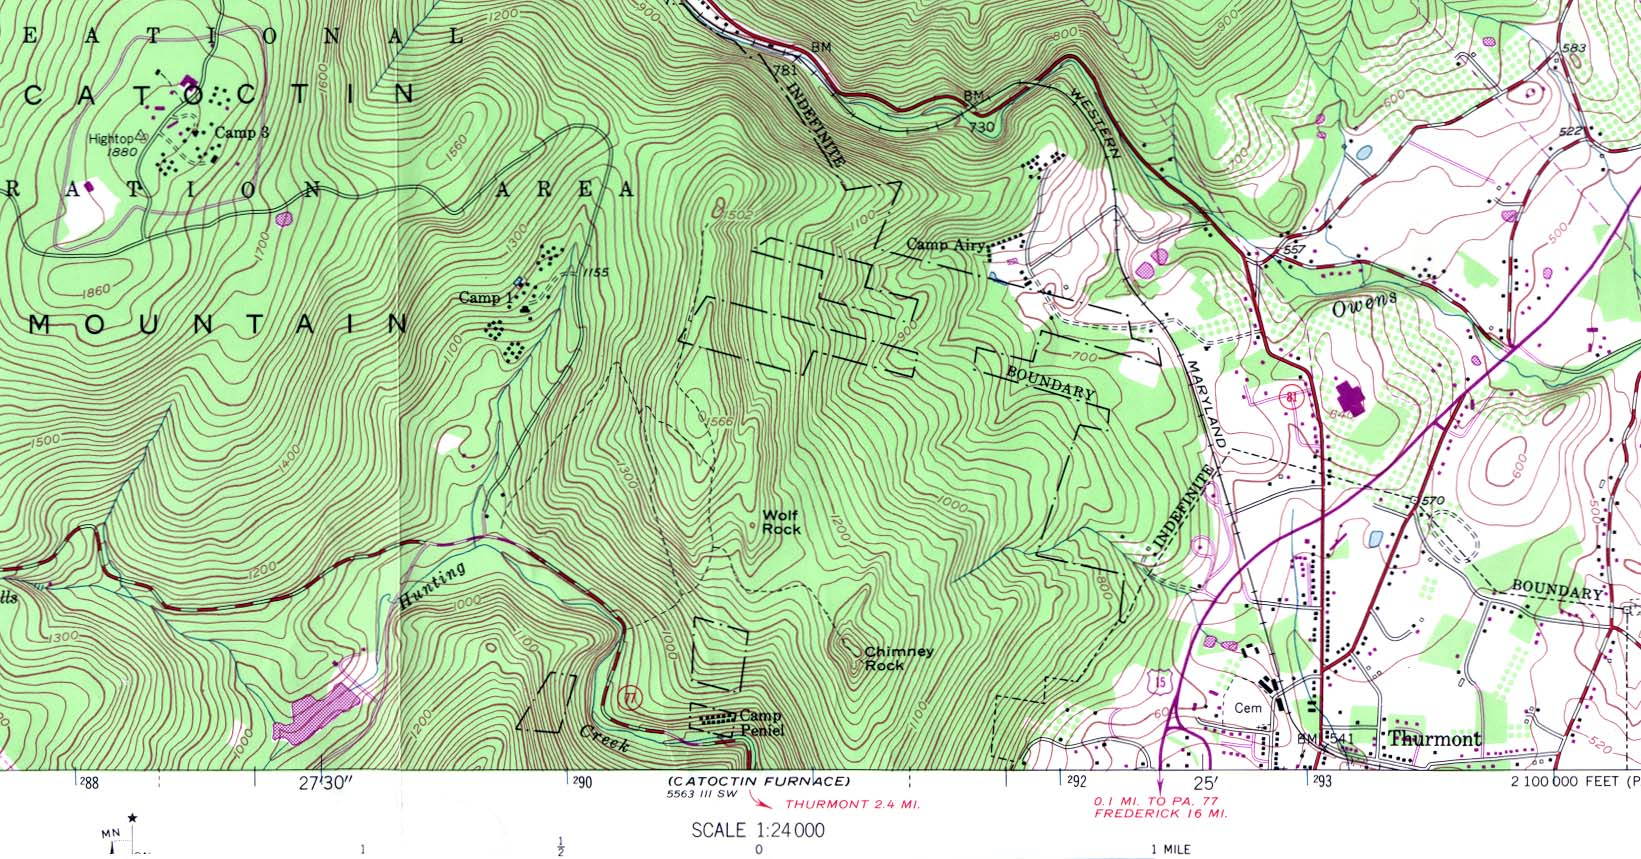 Camp David (Camp 3) Topographic Map, Maryland, United States